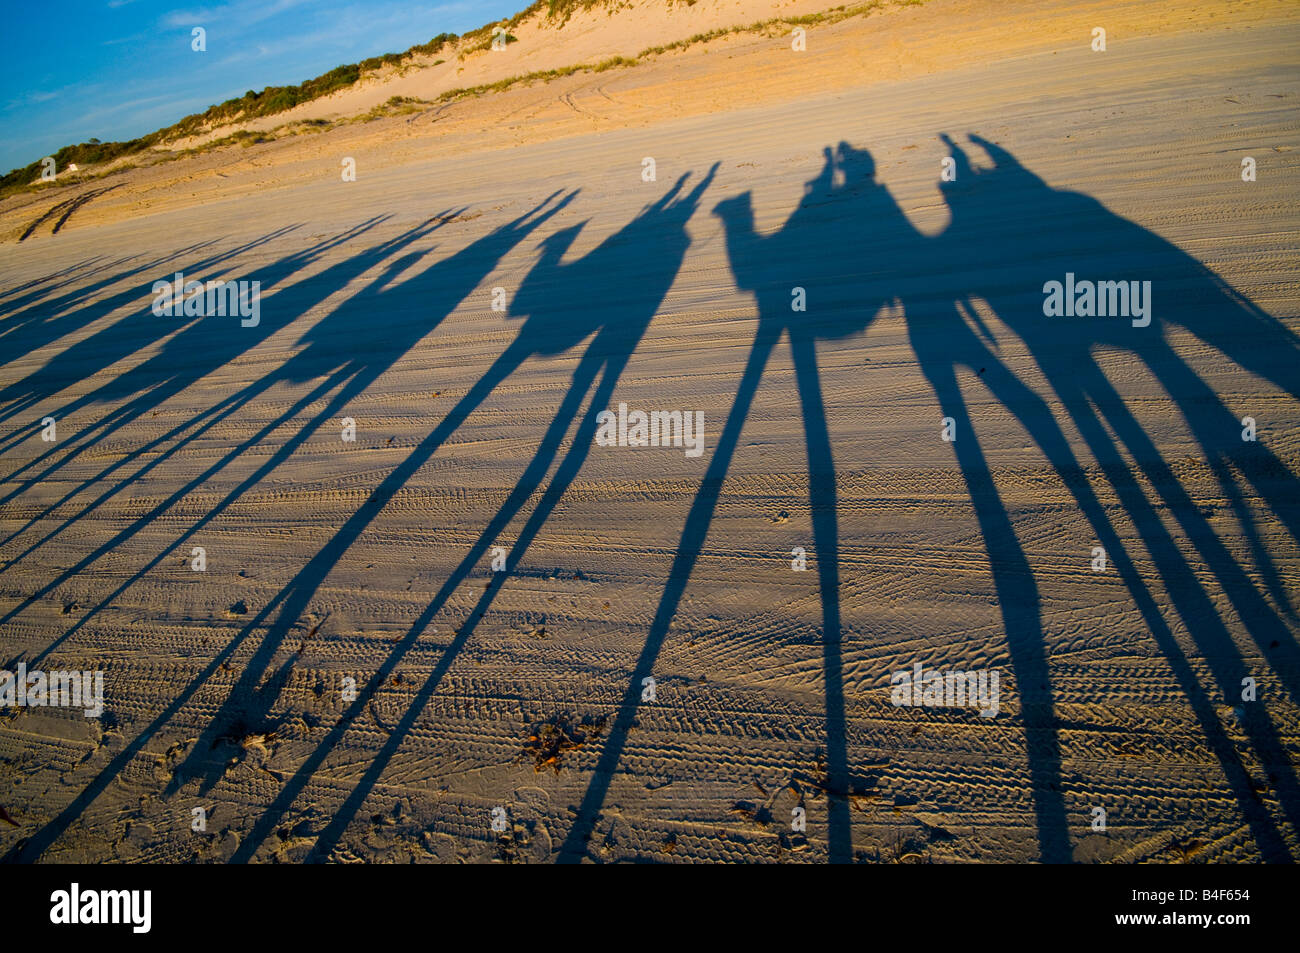 L'équitation de chameau au coucher du soleil sur la plage Cable Broome Australie Occidentale Photo Stock